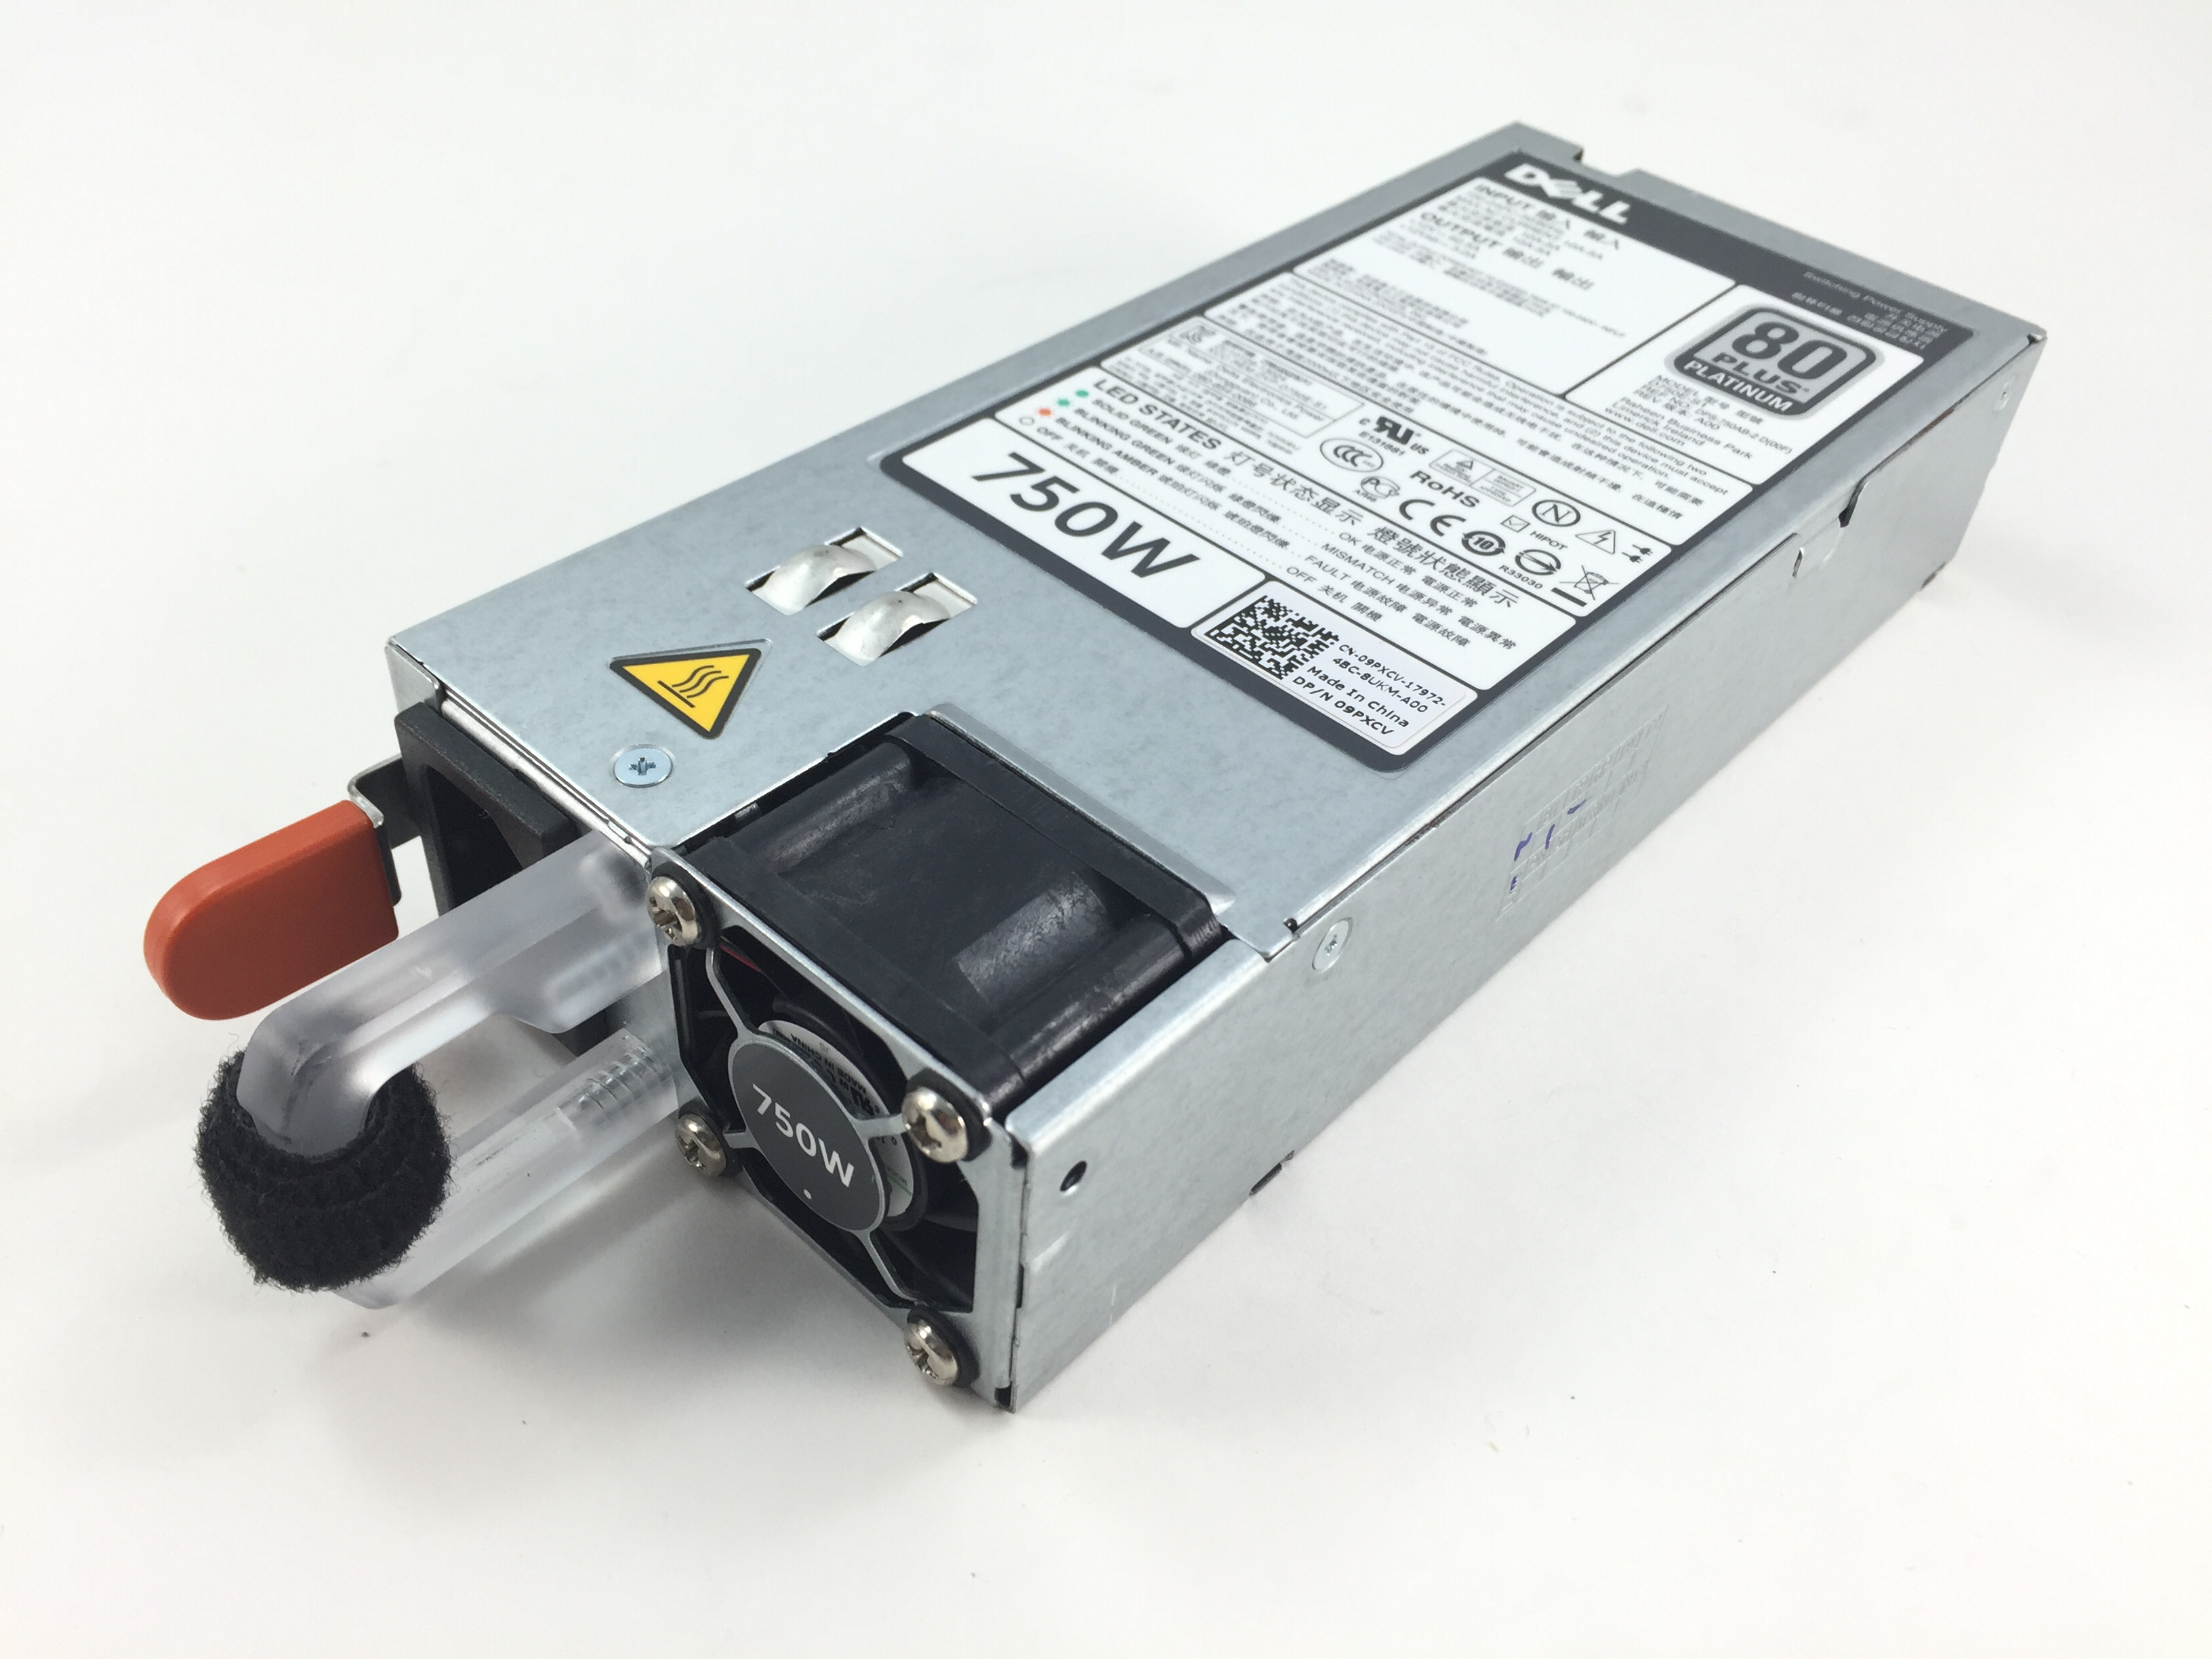 Dell PowerEdge R520 R620 R720 R720Xd 750W 80 Plus Platinum Power Supply (9PXCV)